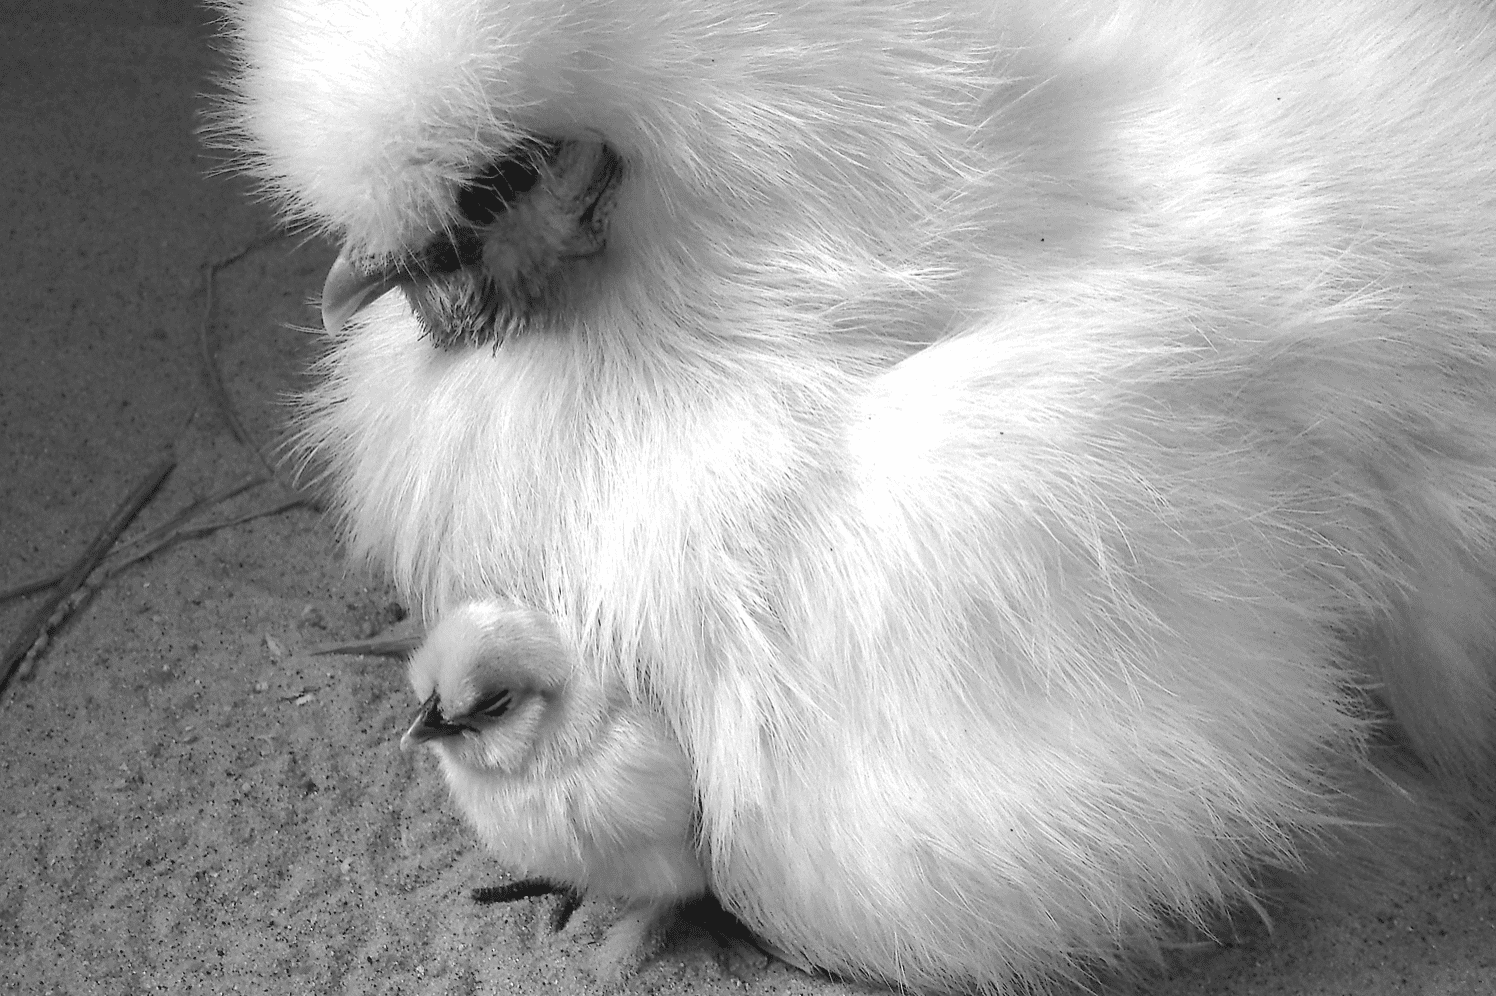 mother hen & baby chick